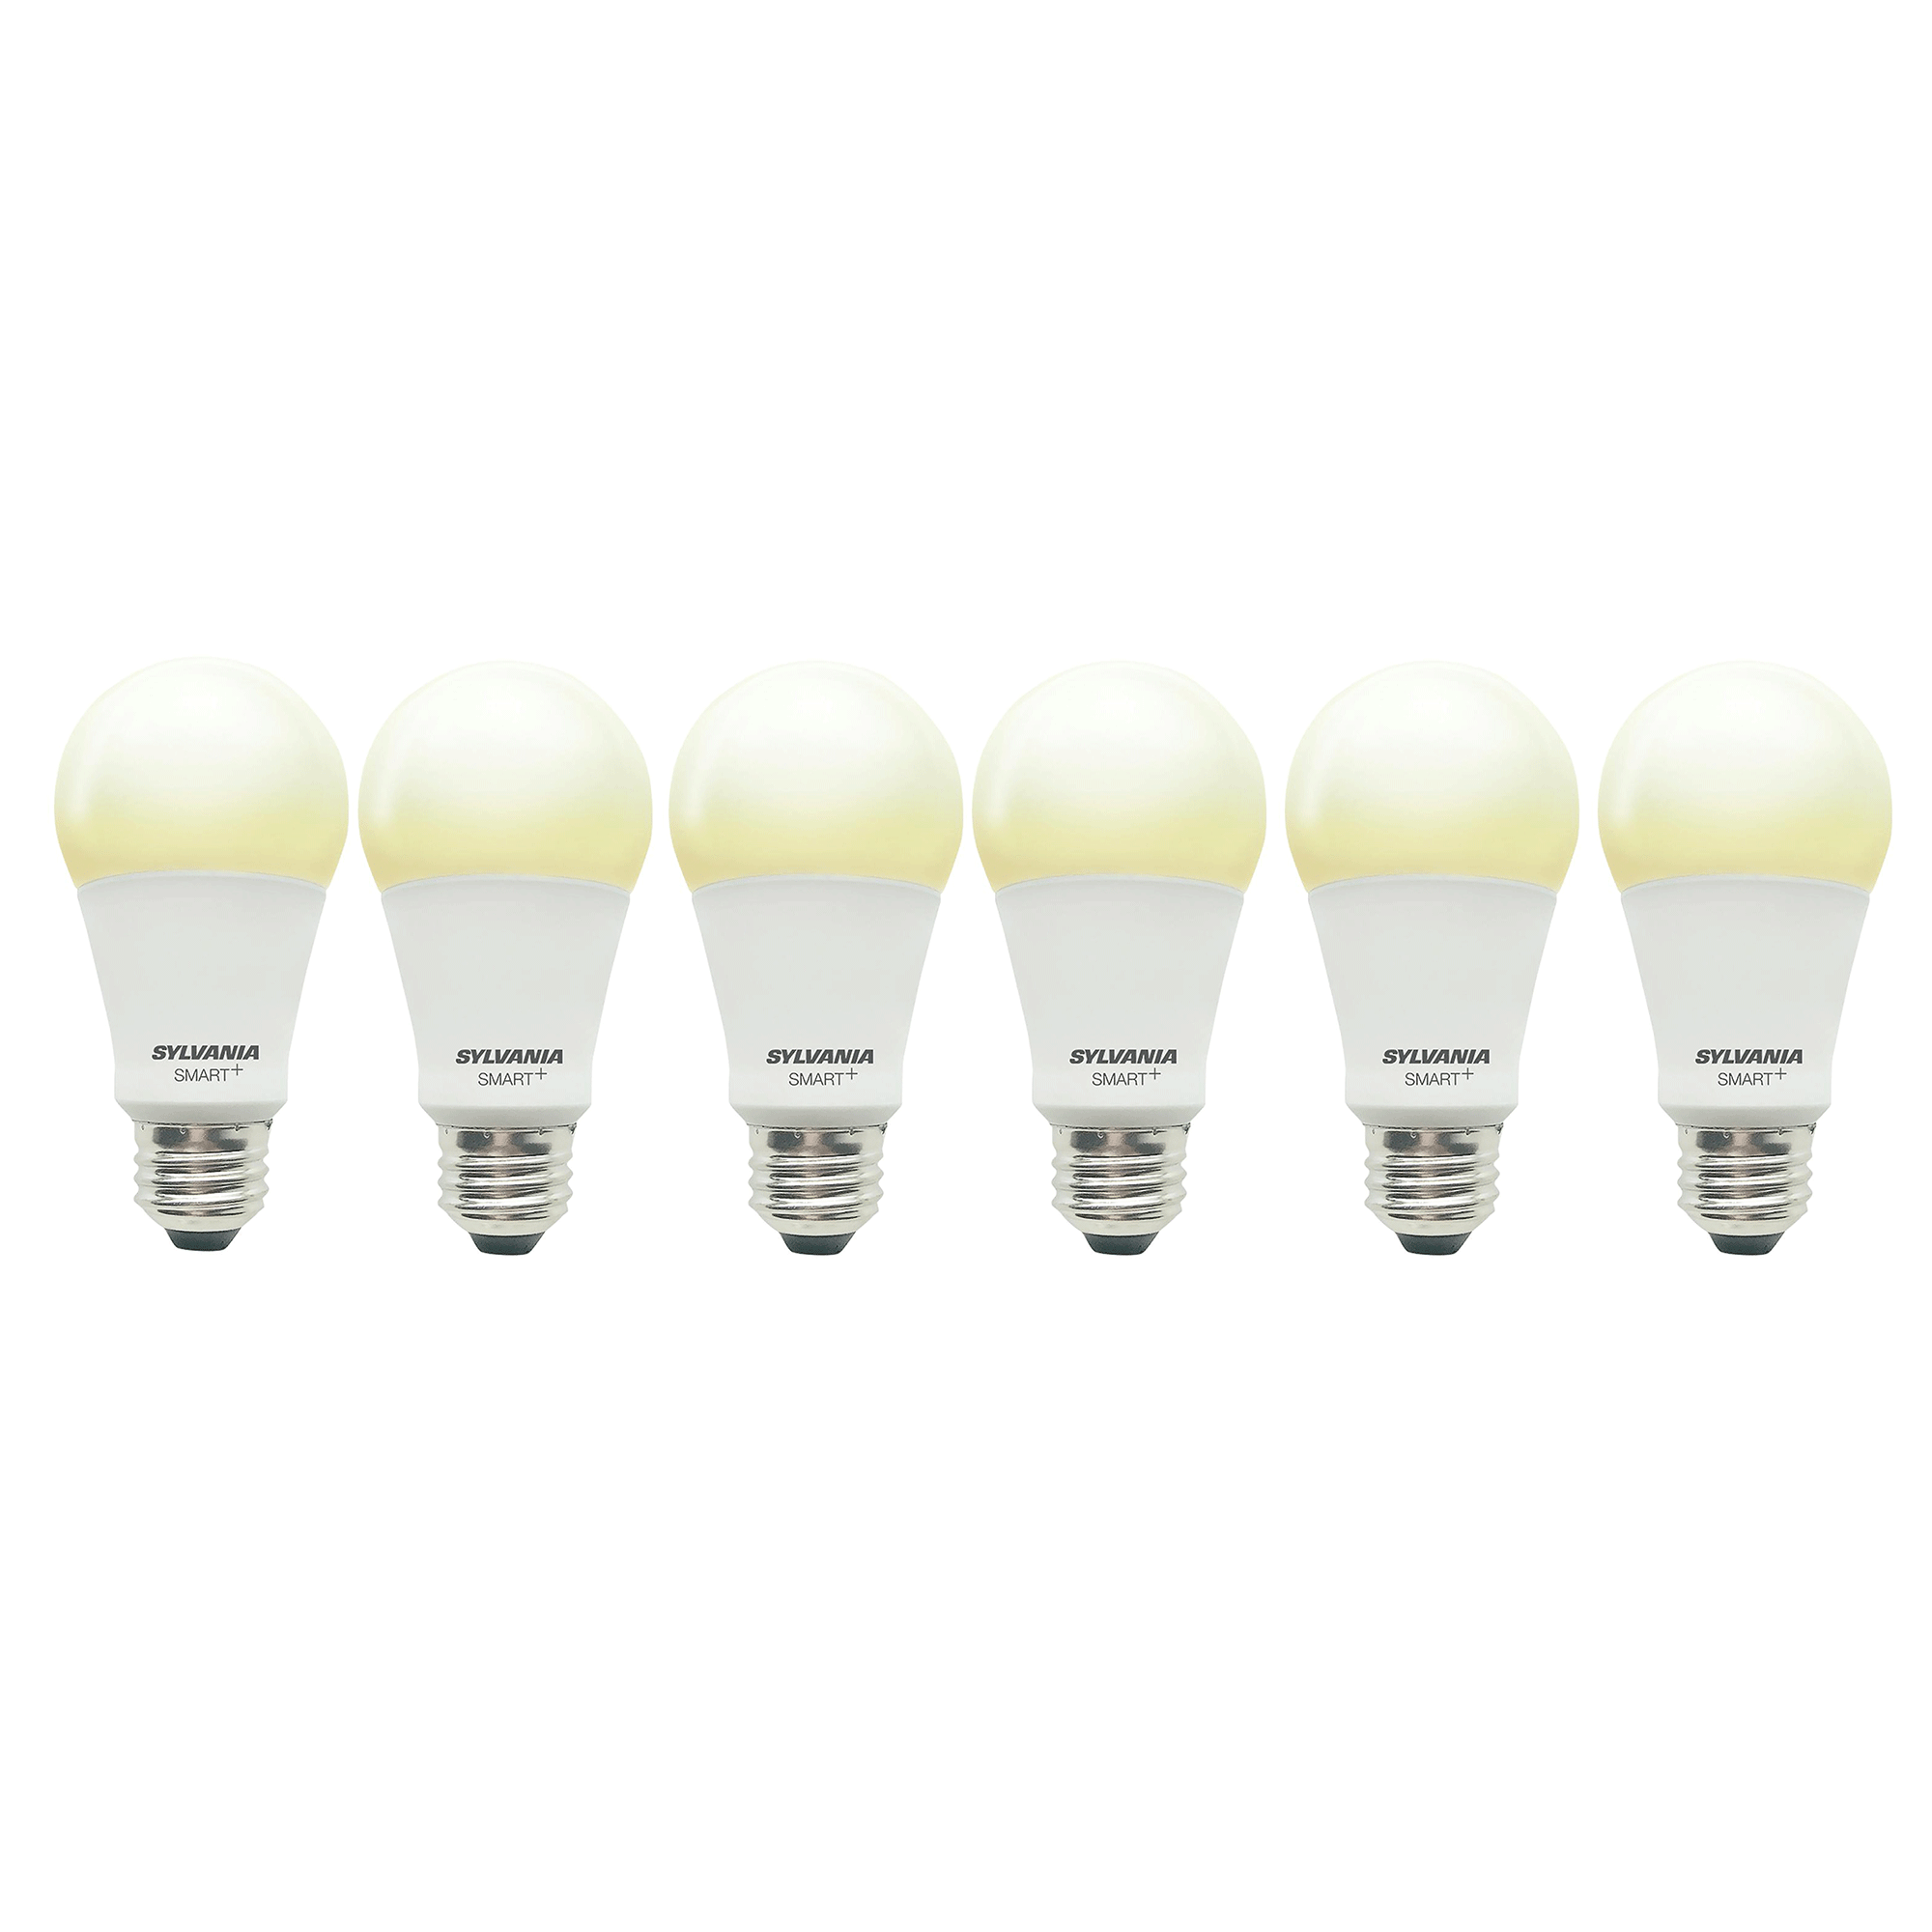 Sylvania Smart+ Bluetooth Soft White A19 LED Light Bulb w/ Apple & Siri (6 Pack)